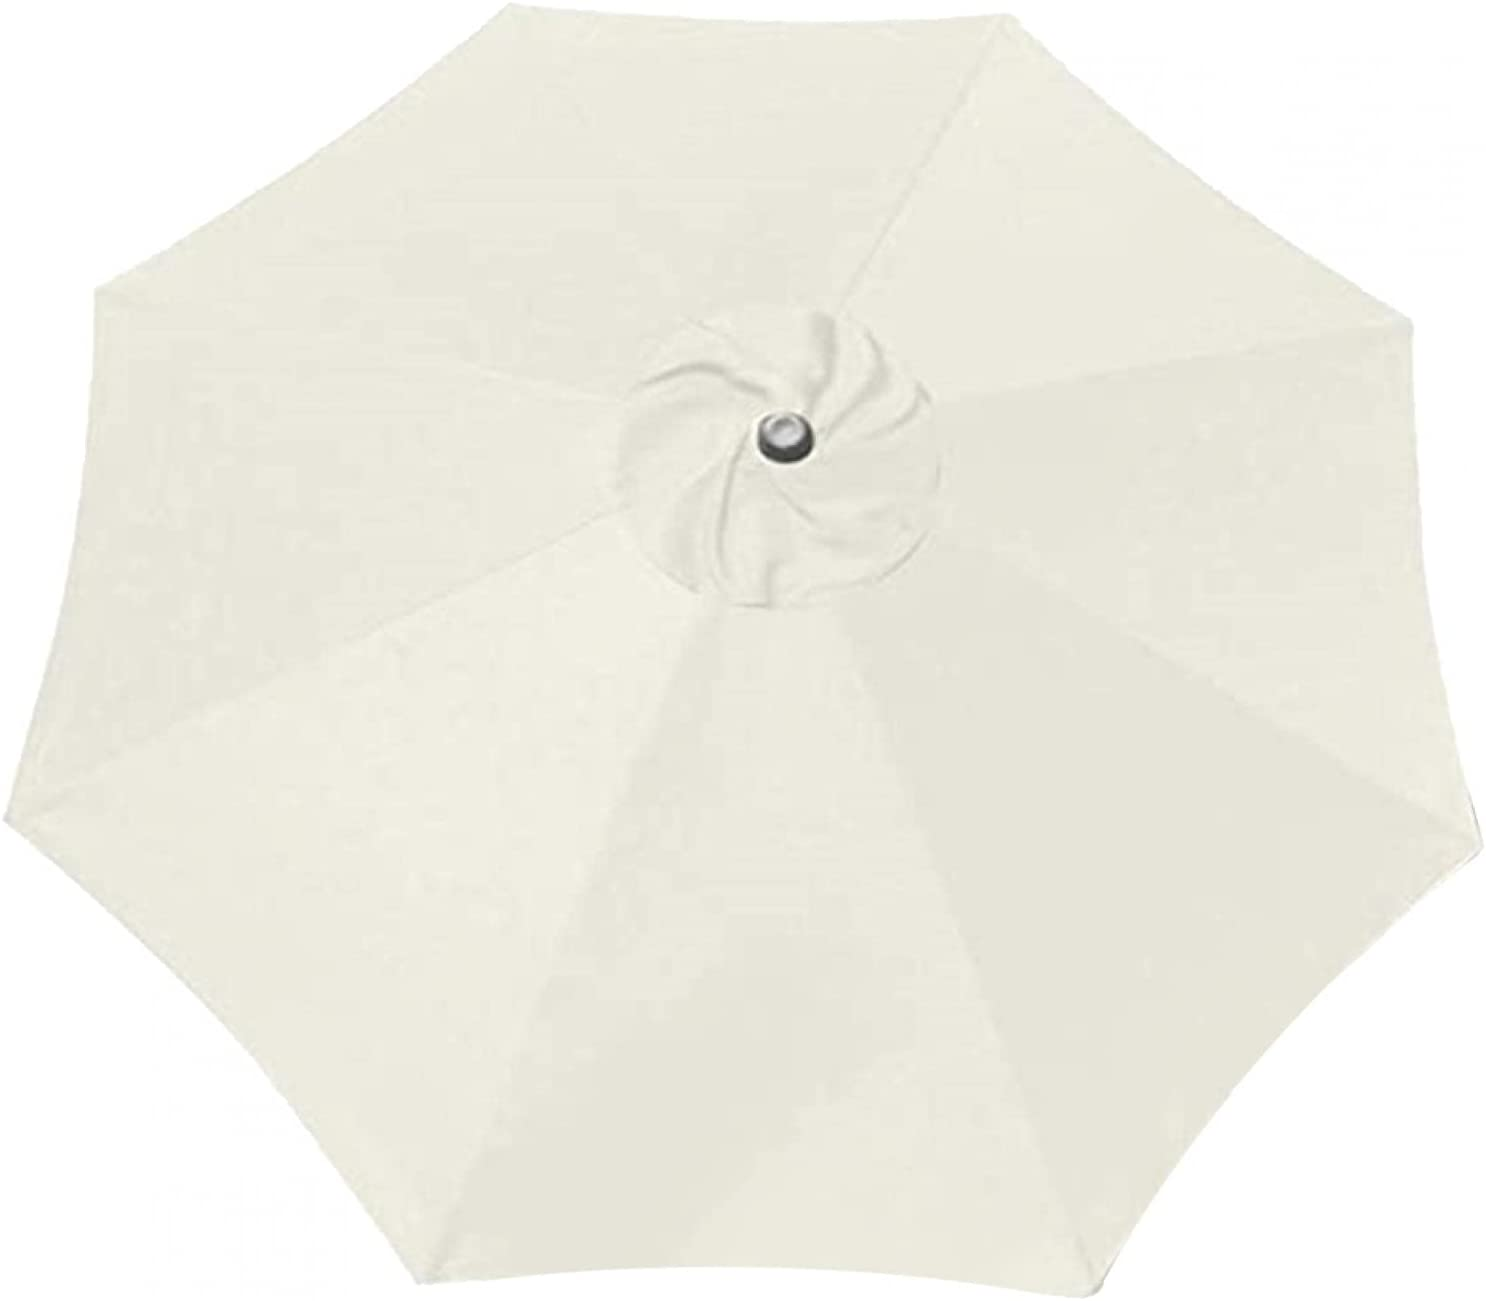 ompait Ranking TOP12 Parasol Canopy 5% OFF Polyester Paras Patio Waterproof Umbrella